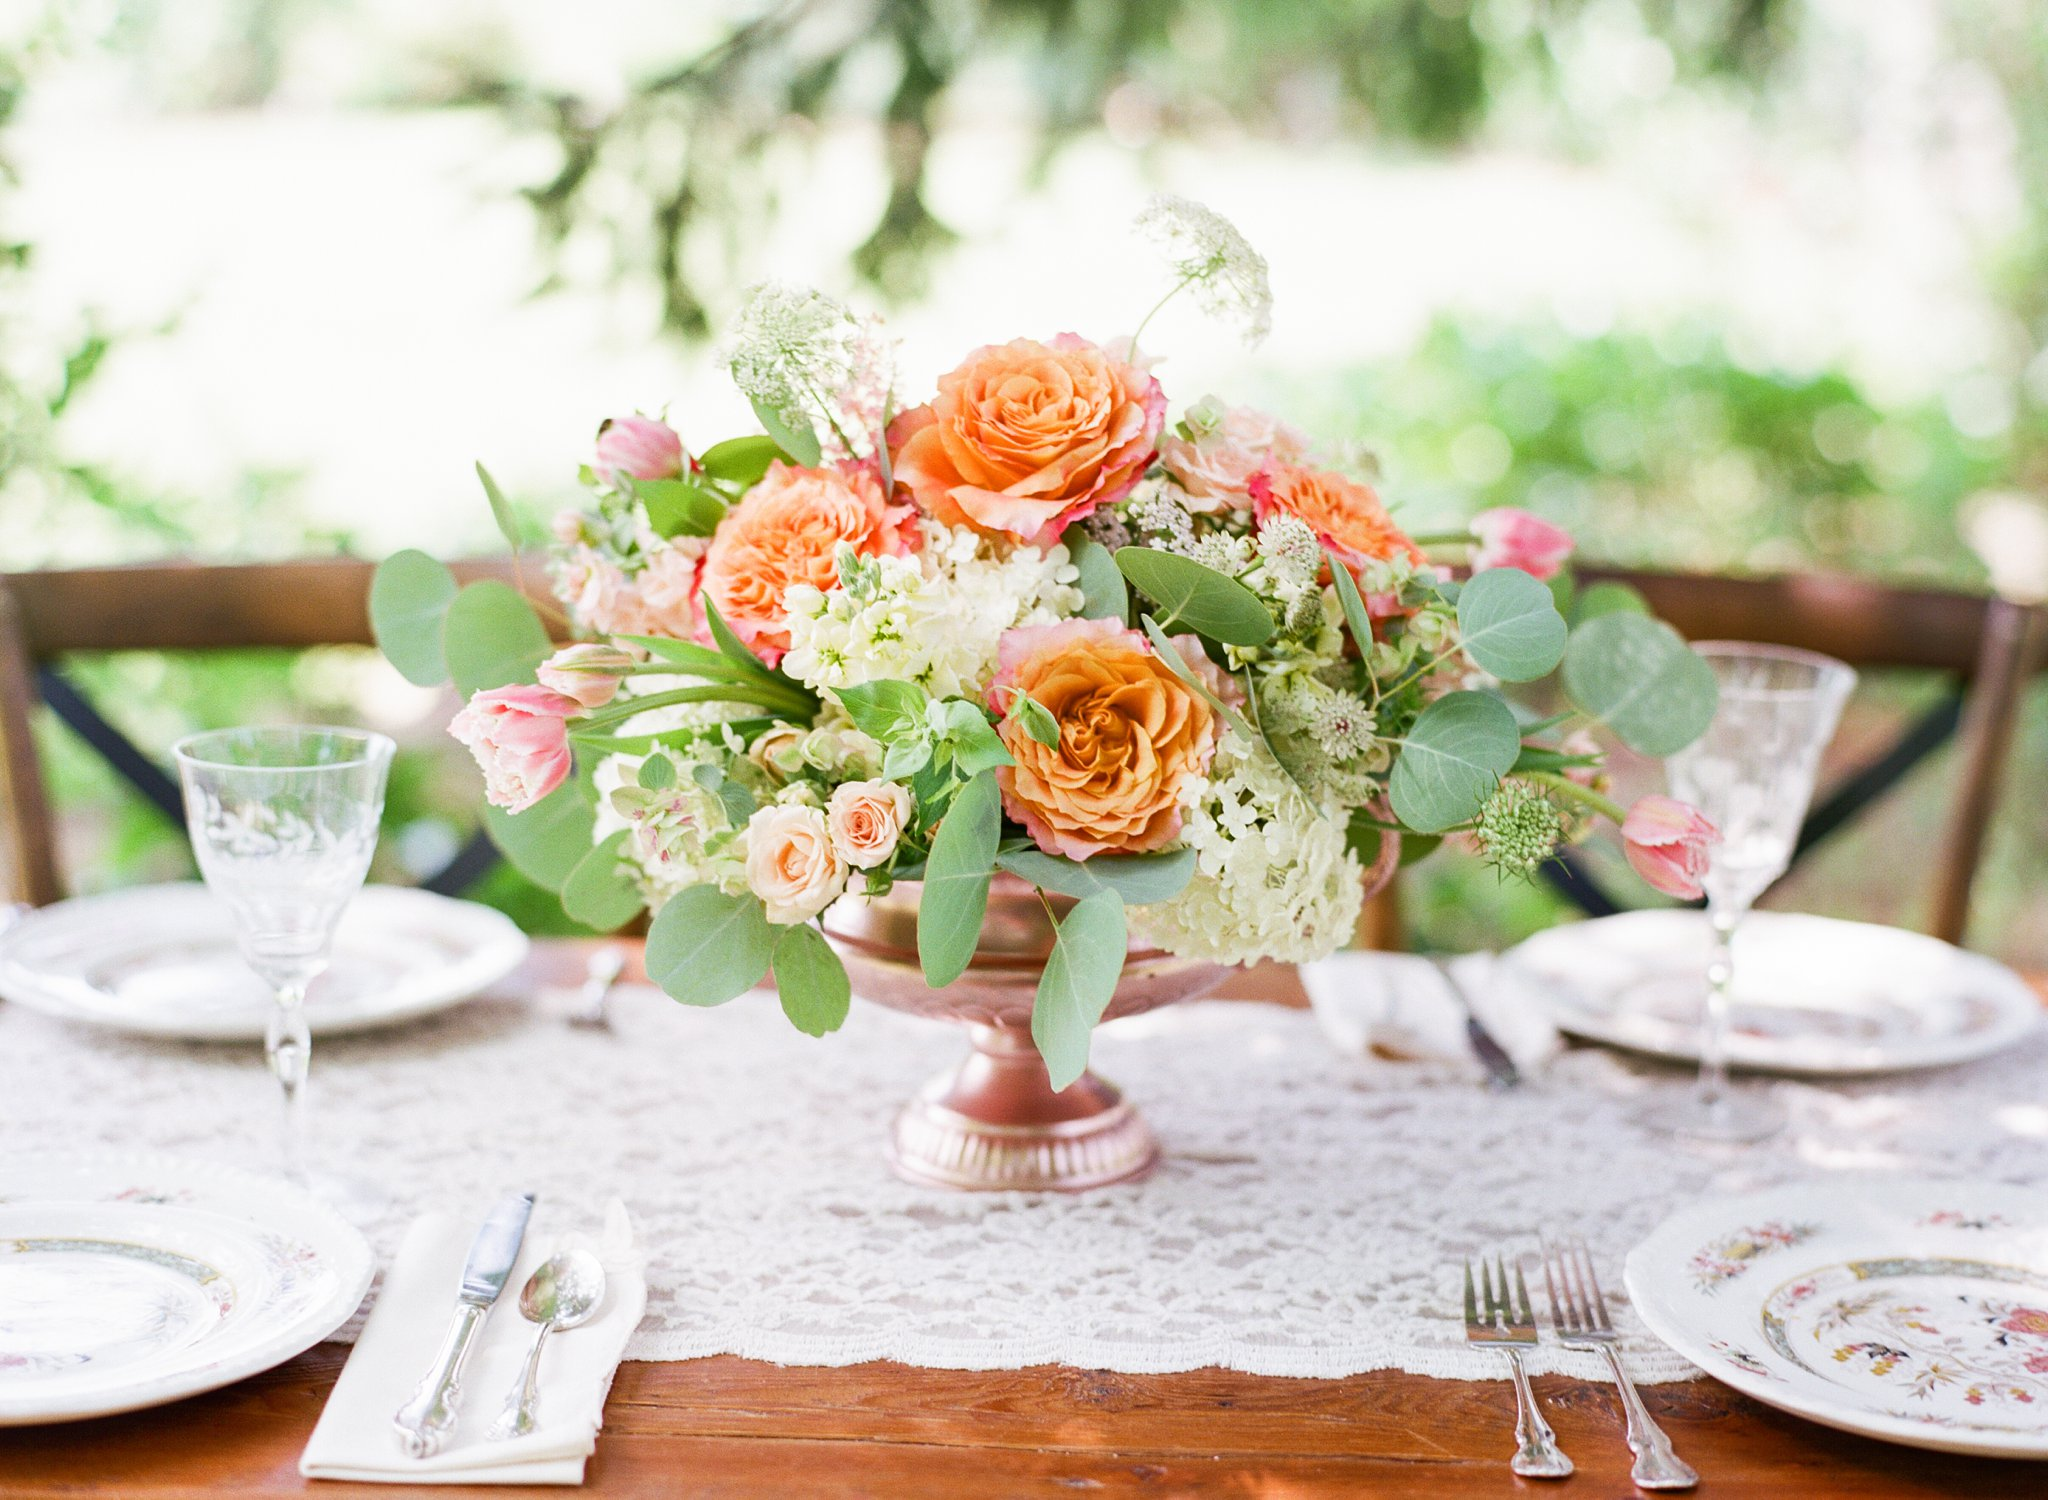 Wedding Centerpiece in Peach